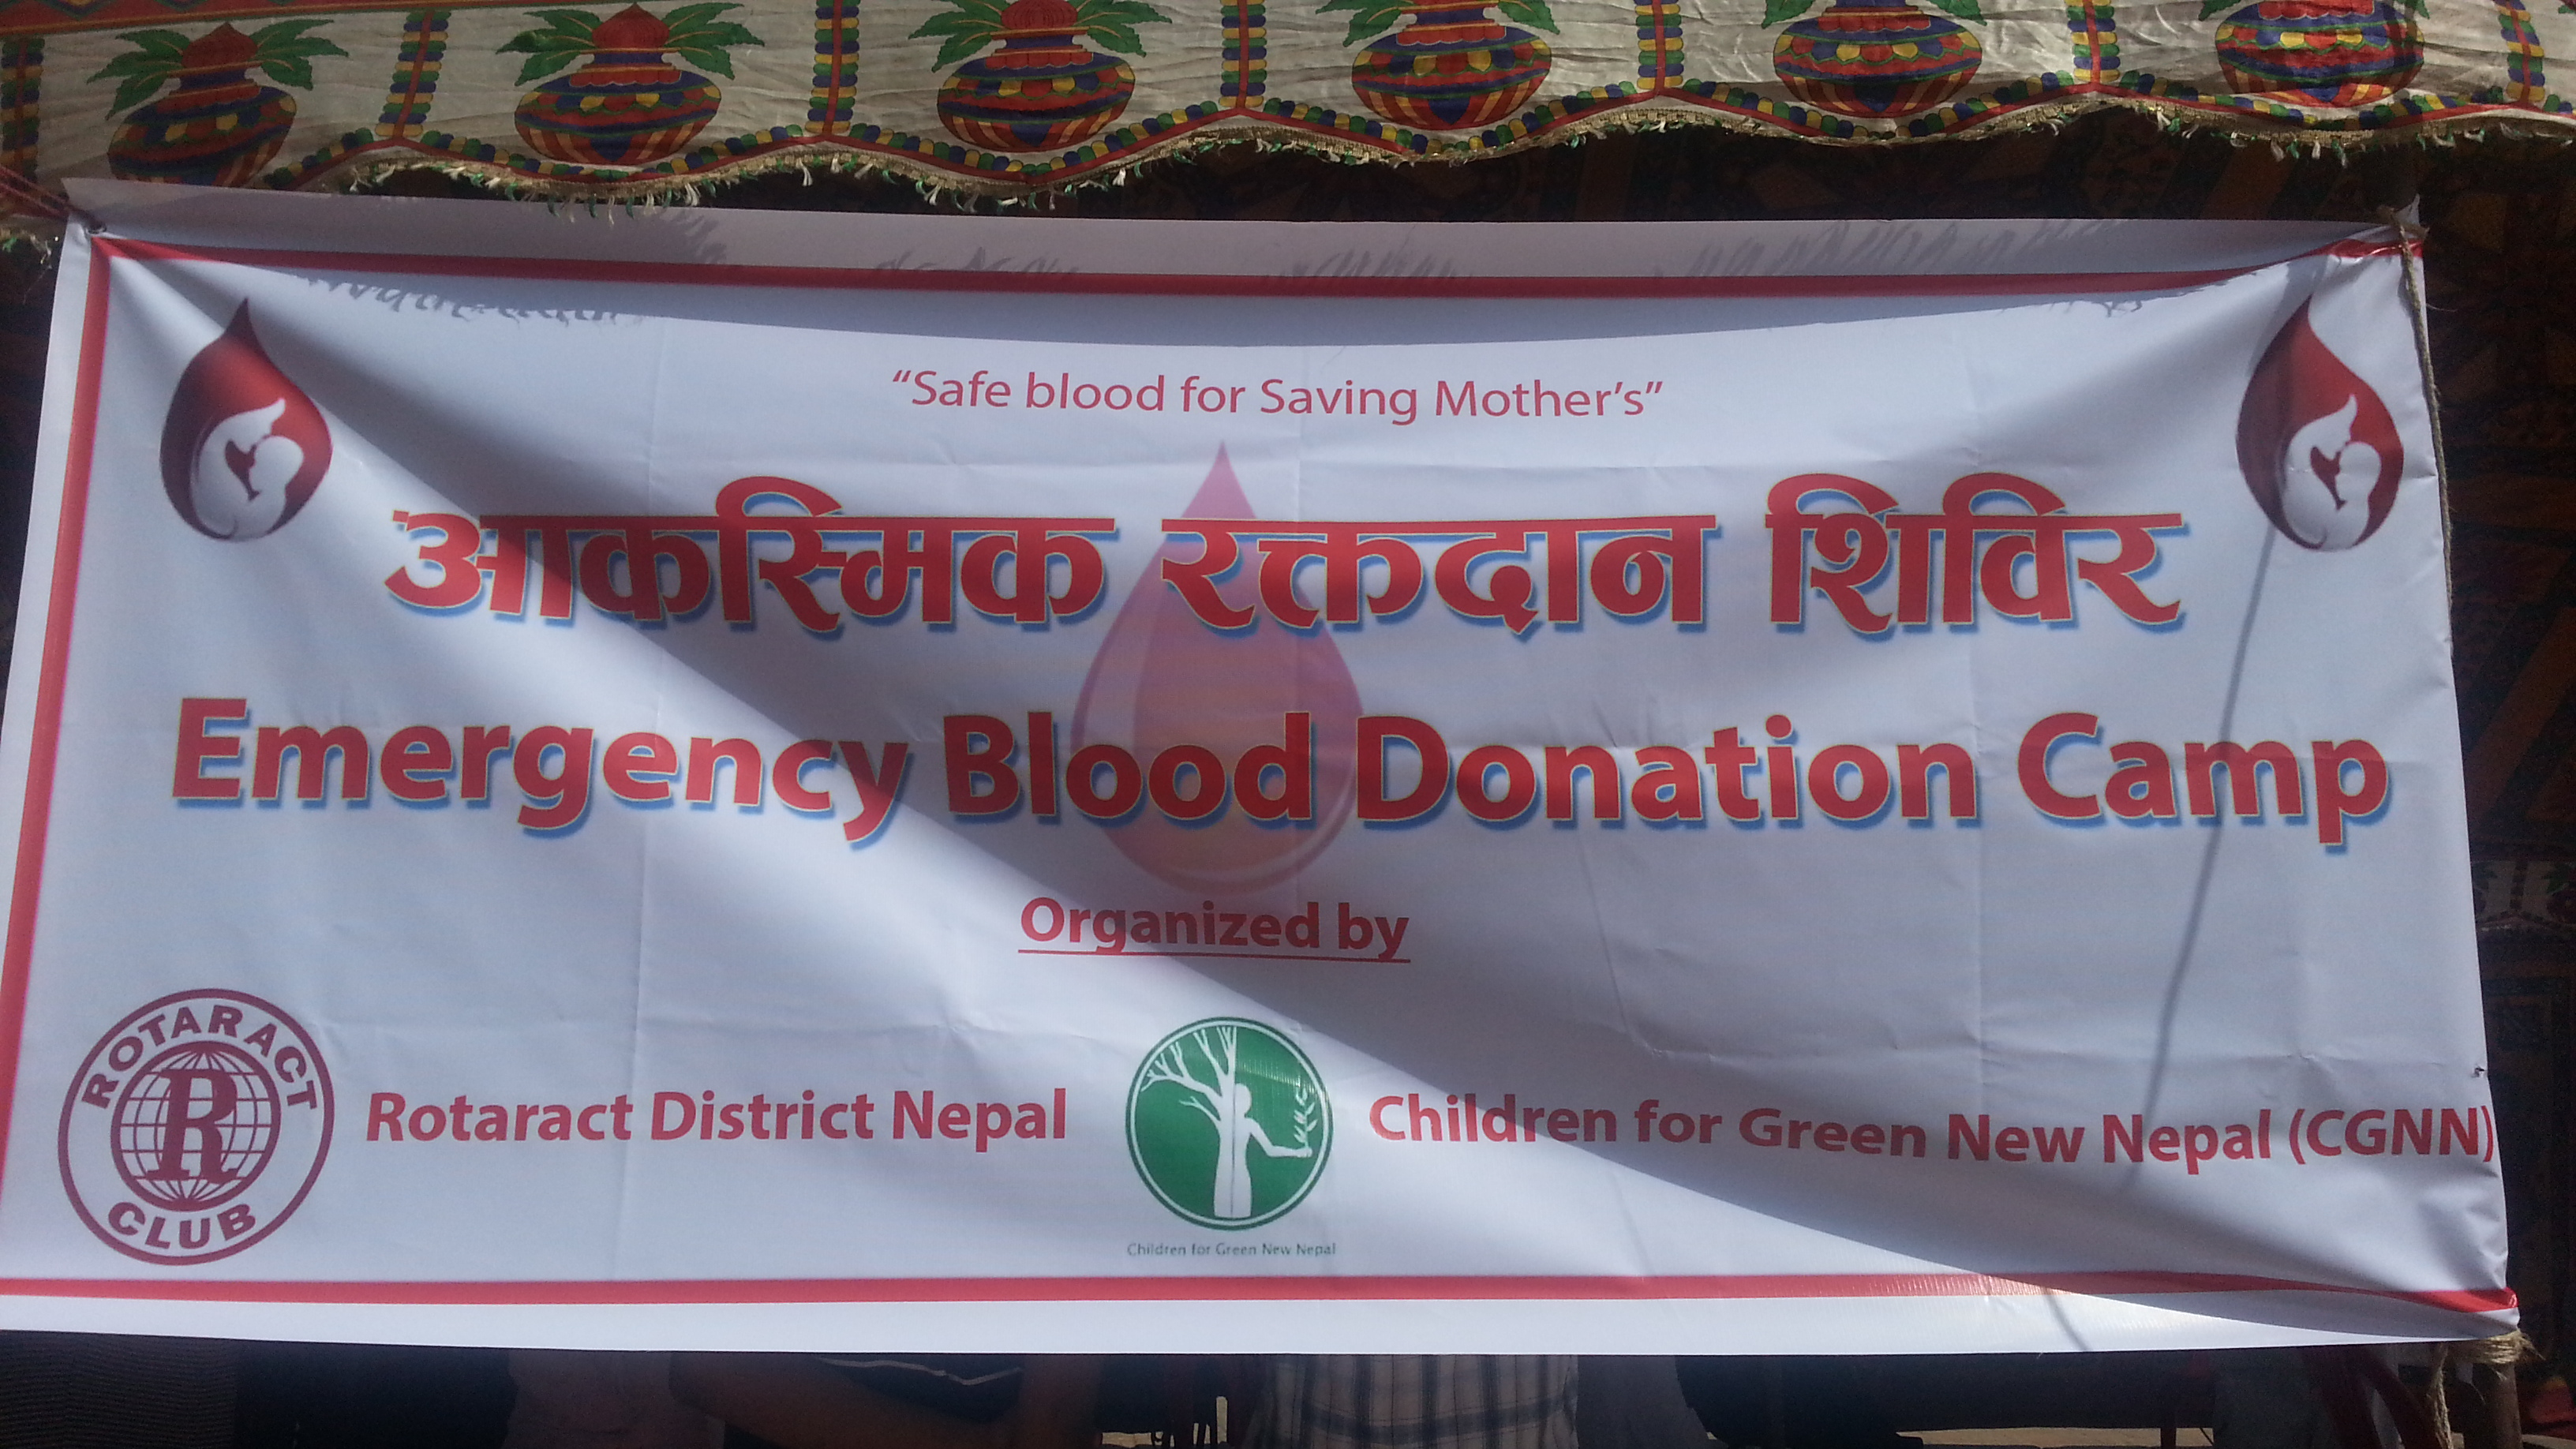 Emergency Blood Donation Camp